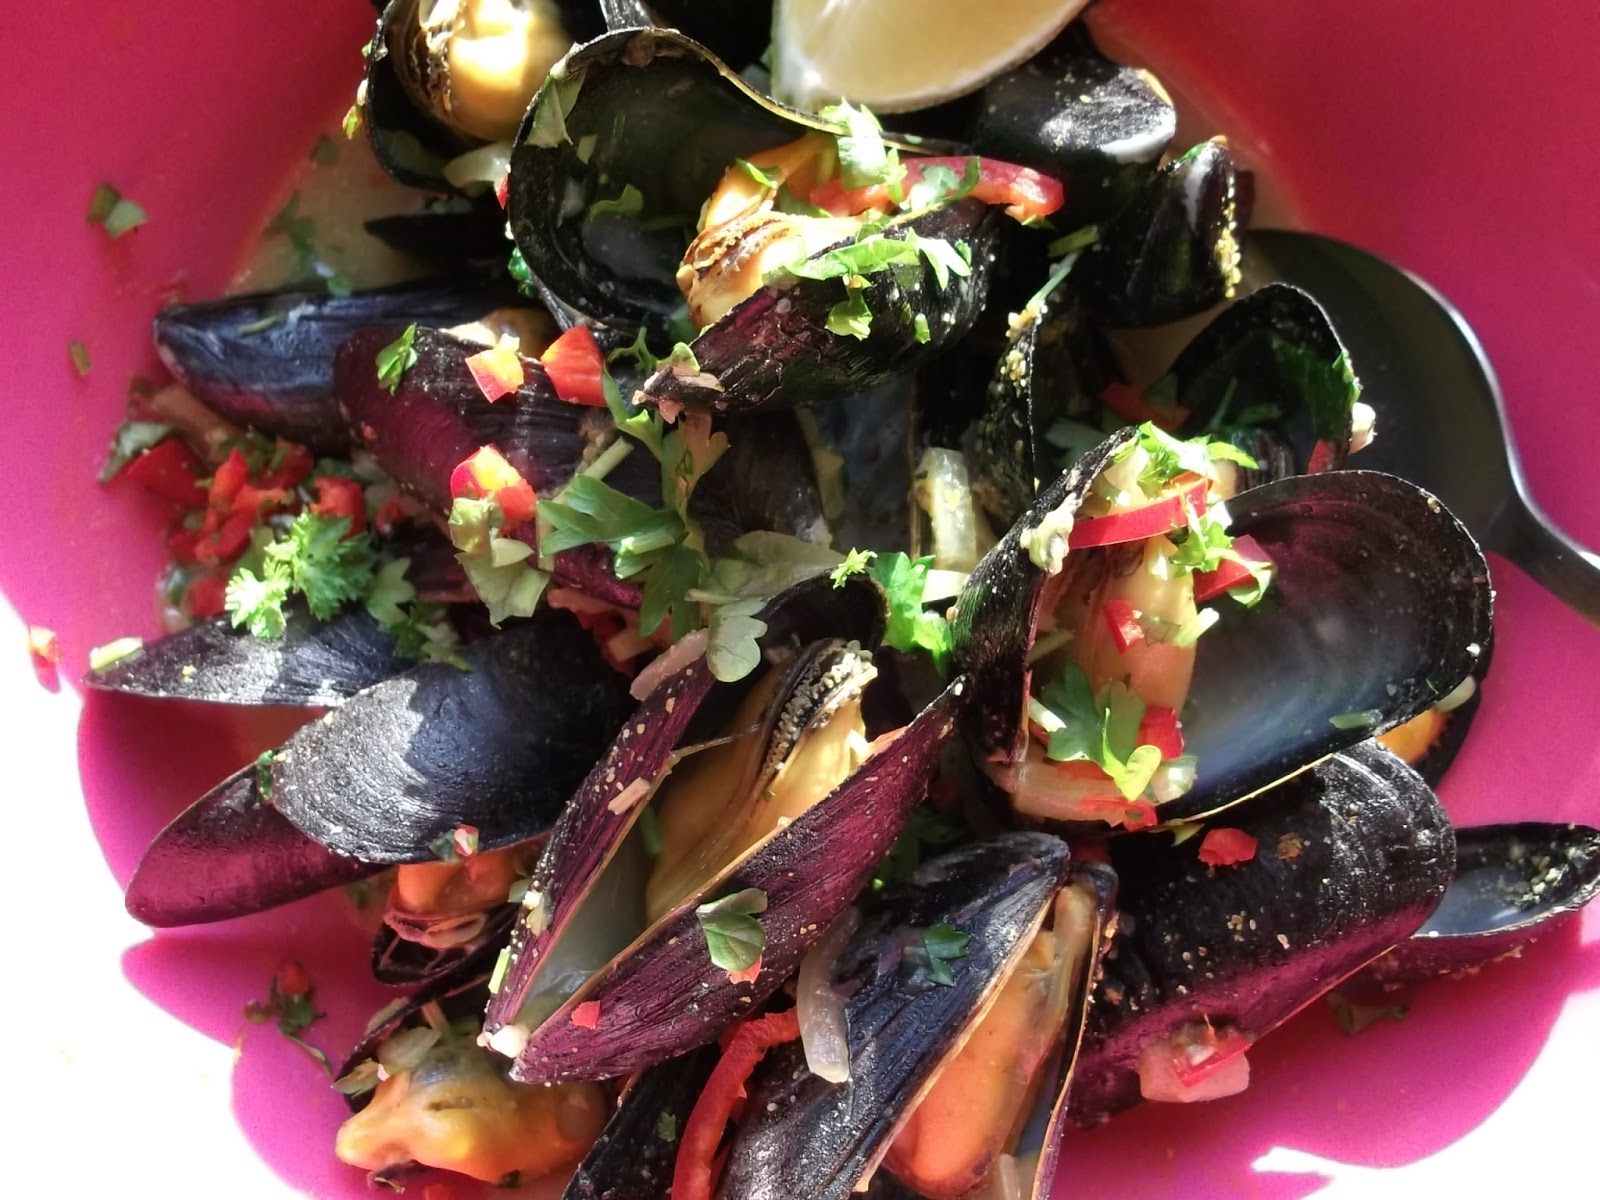 ... how you get on and any favourite ways you have of cooking mussels